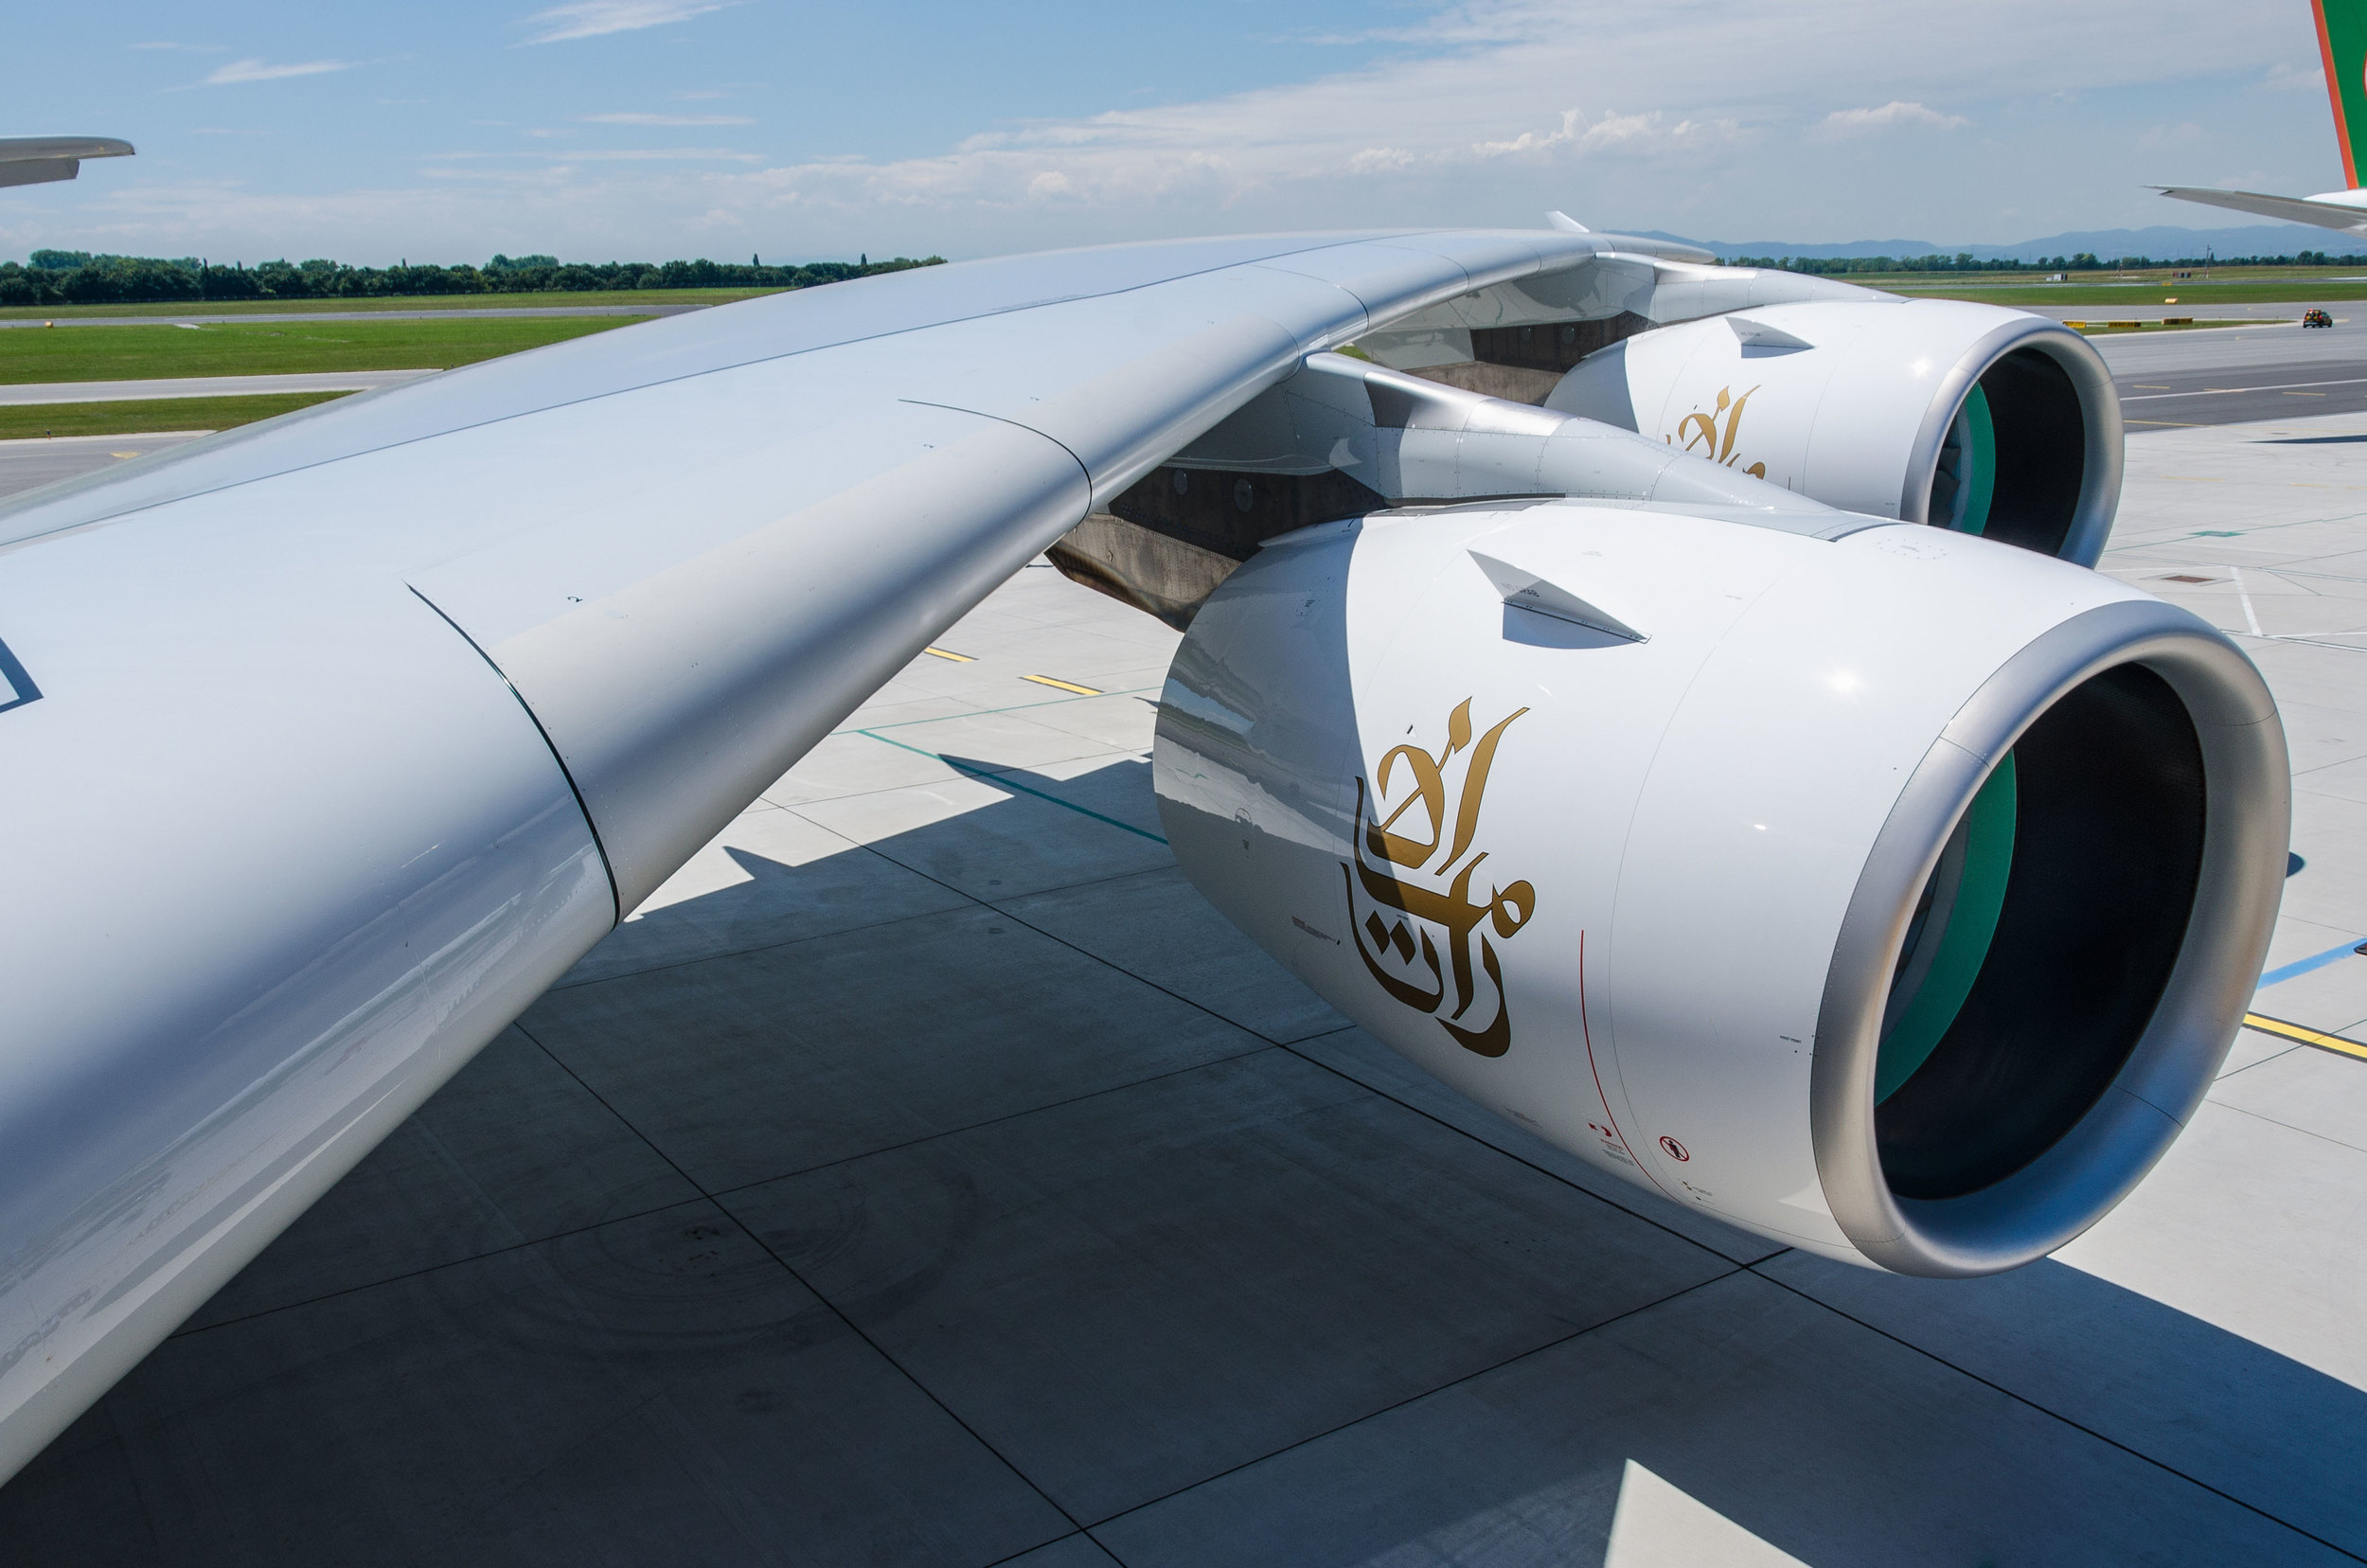 The A380 has a wingspan of 79,75 meters